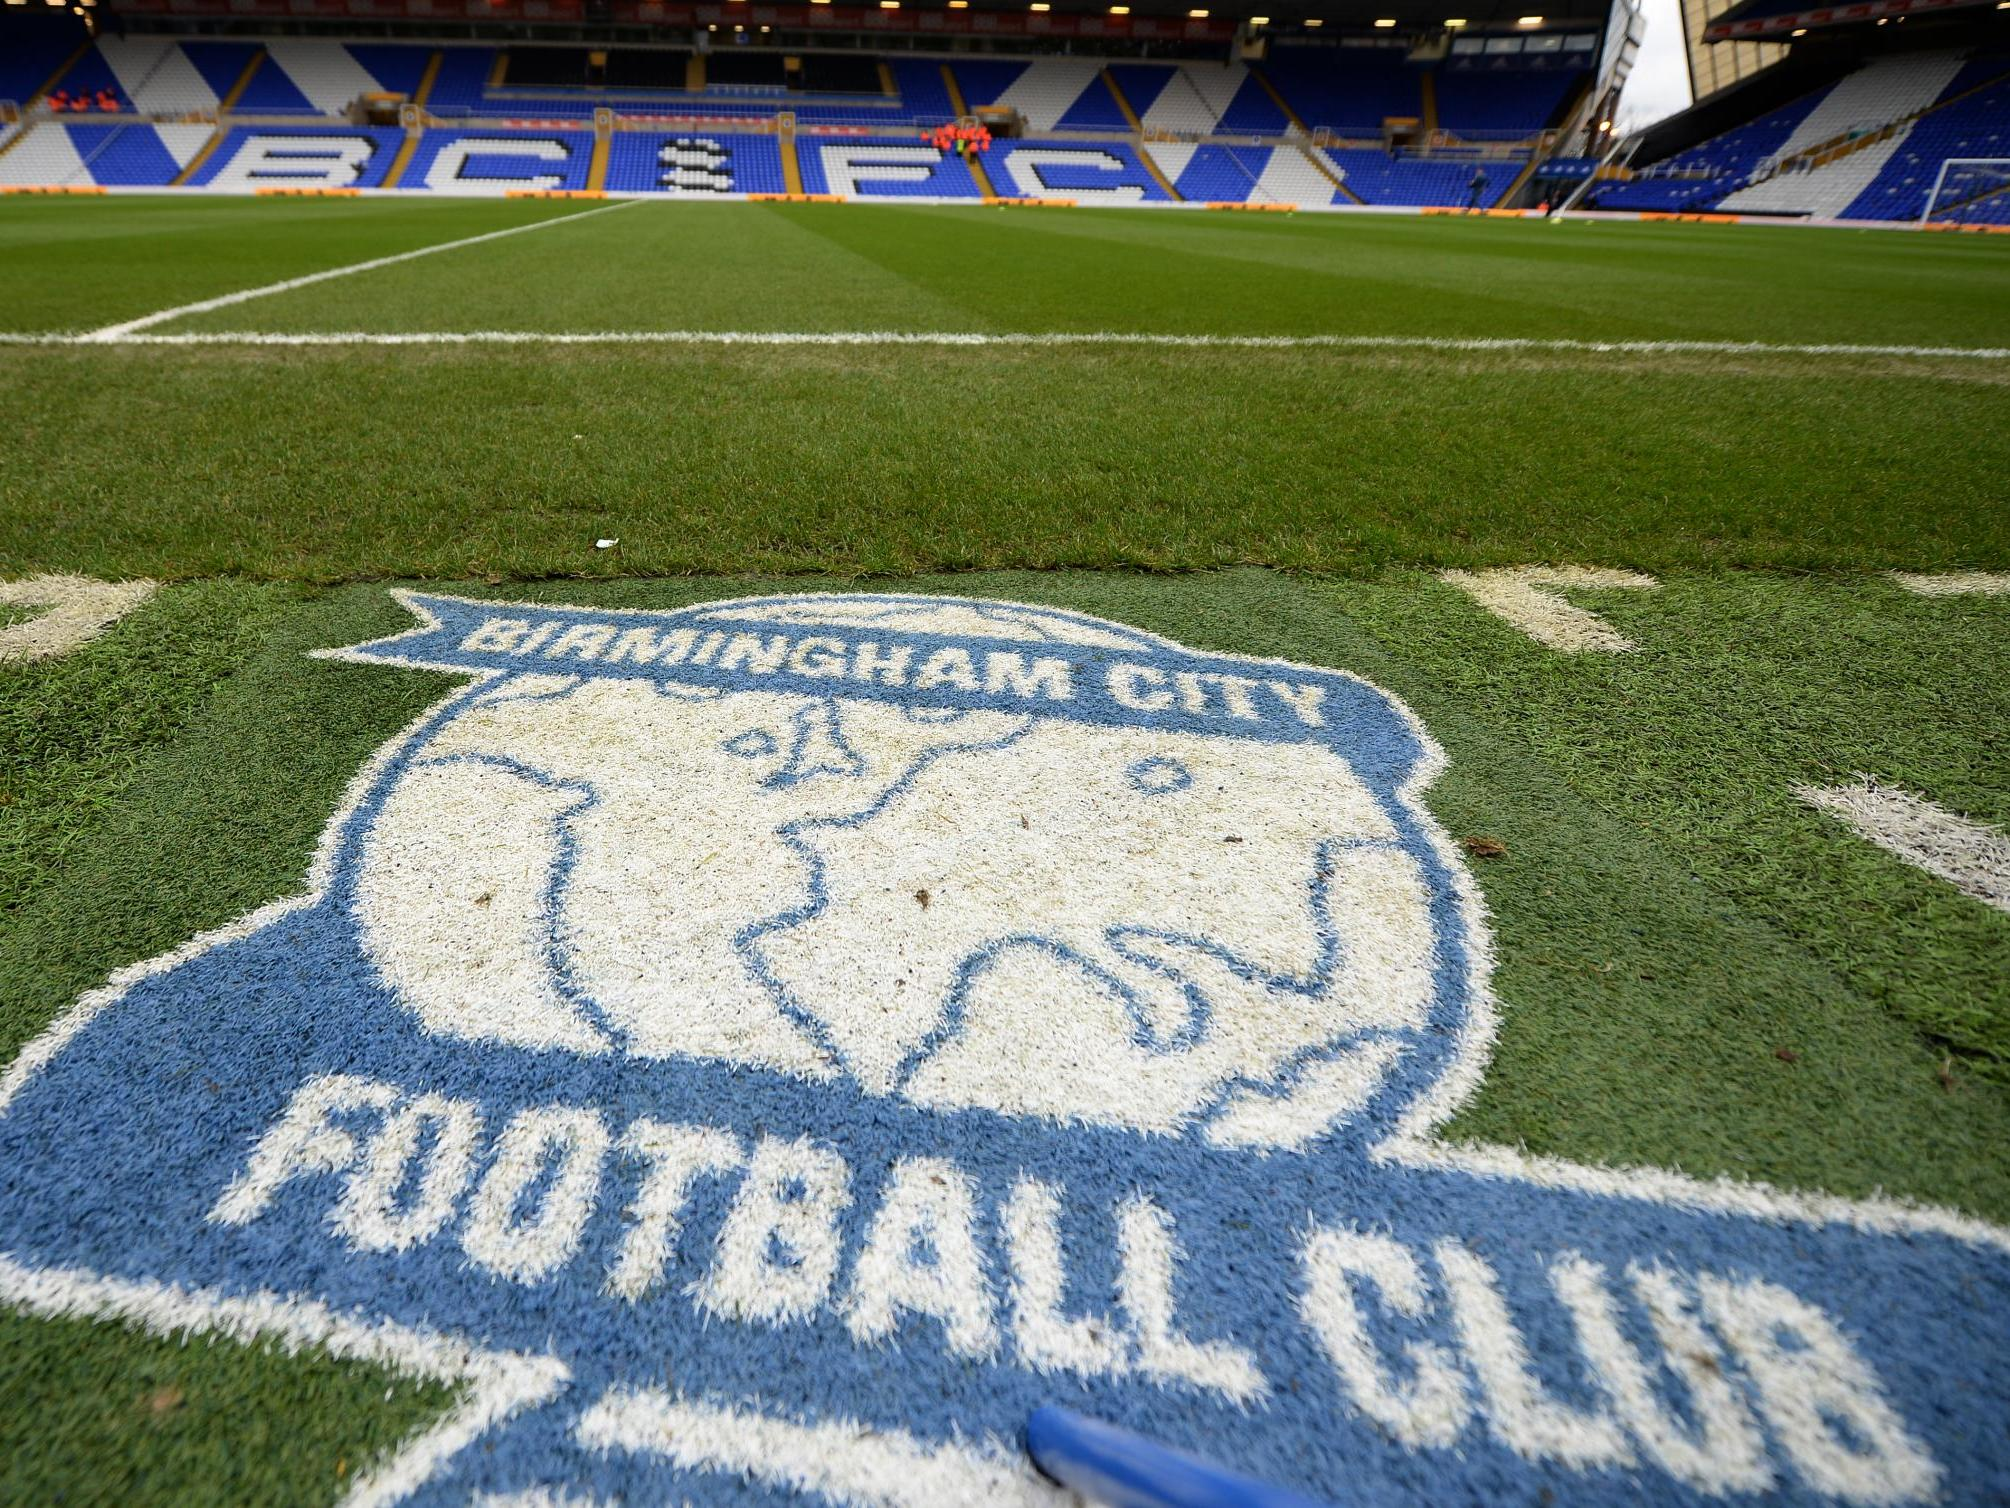 Birmingham City: Blues sweating on possible 12-point penalty and transfer ban